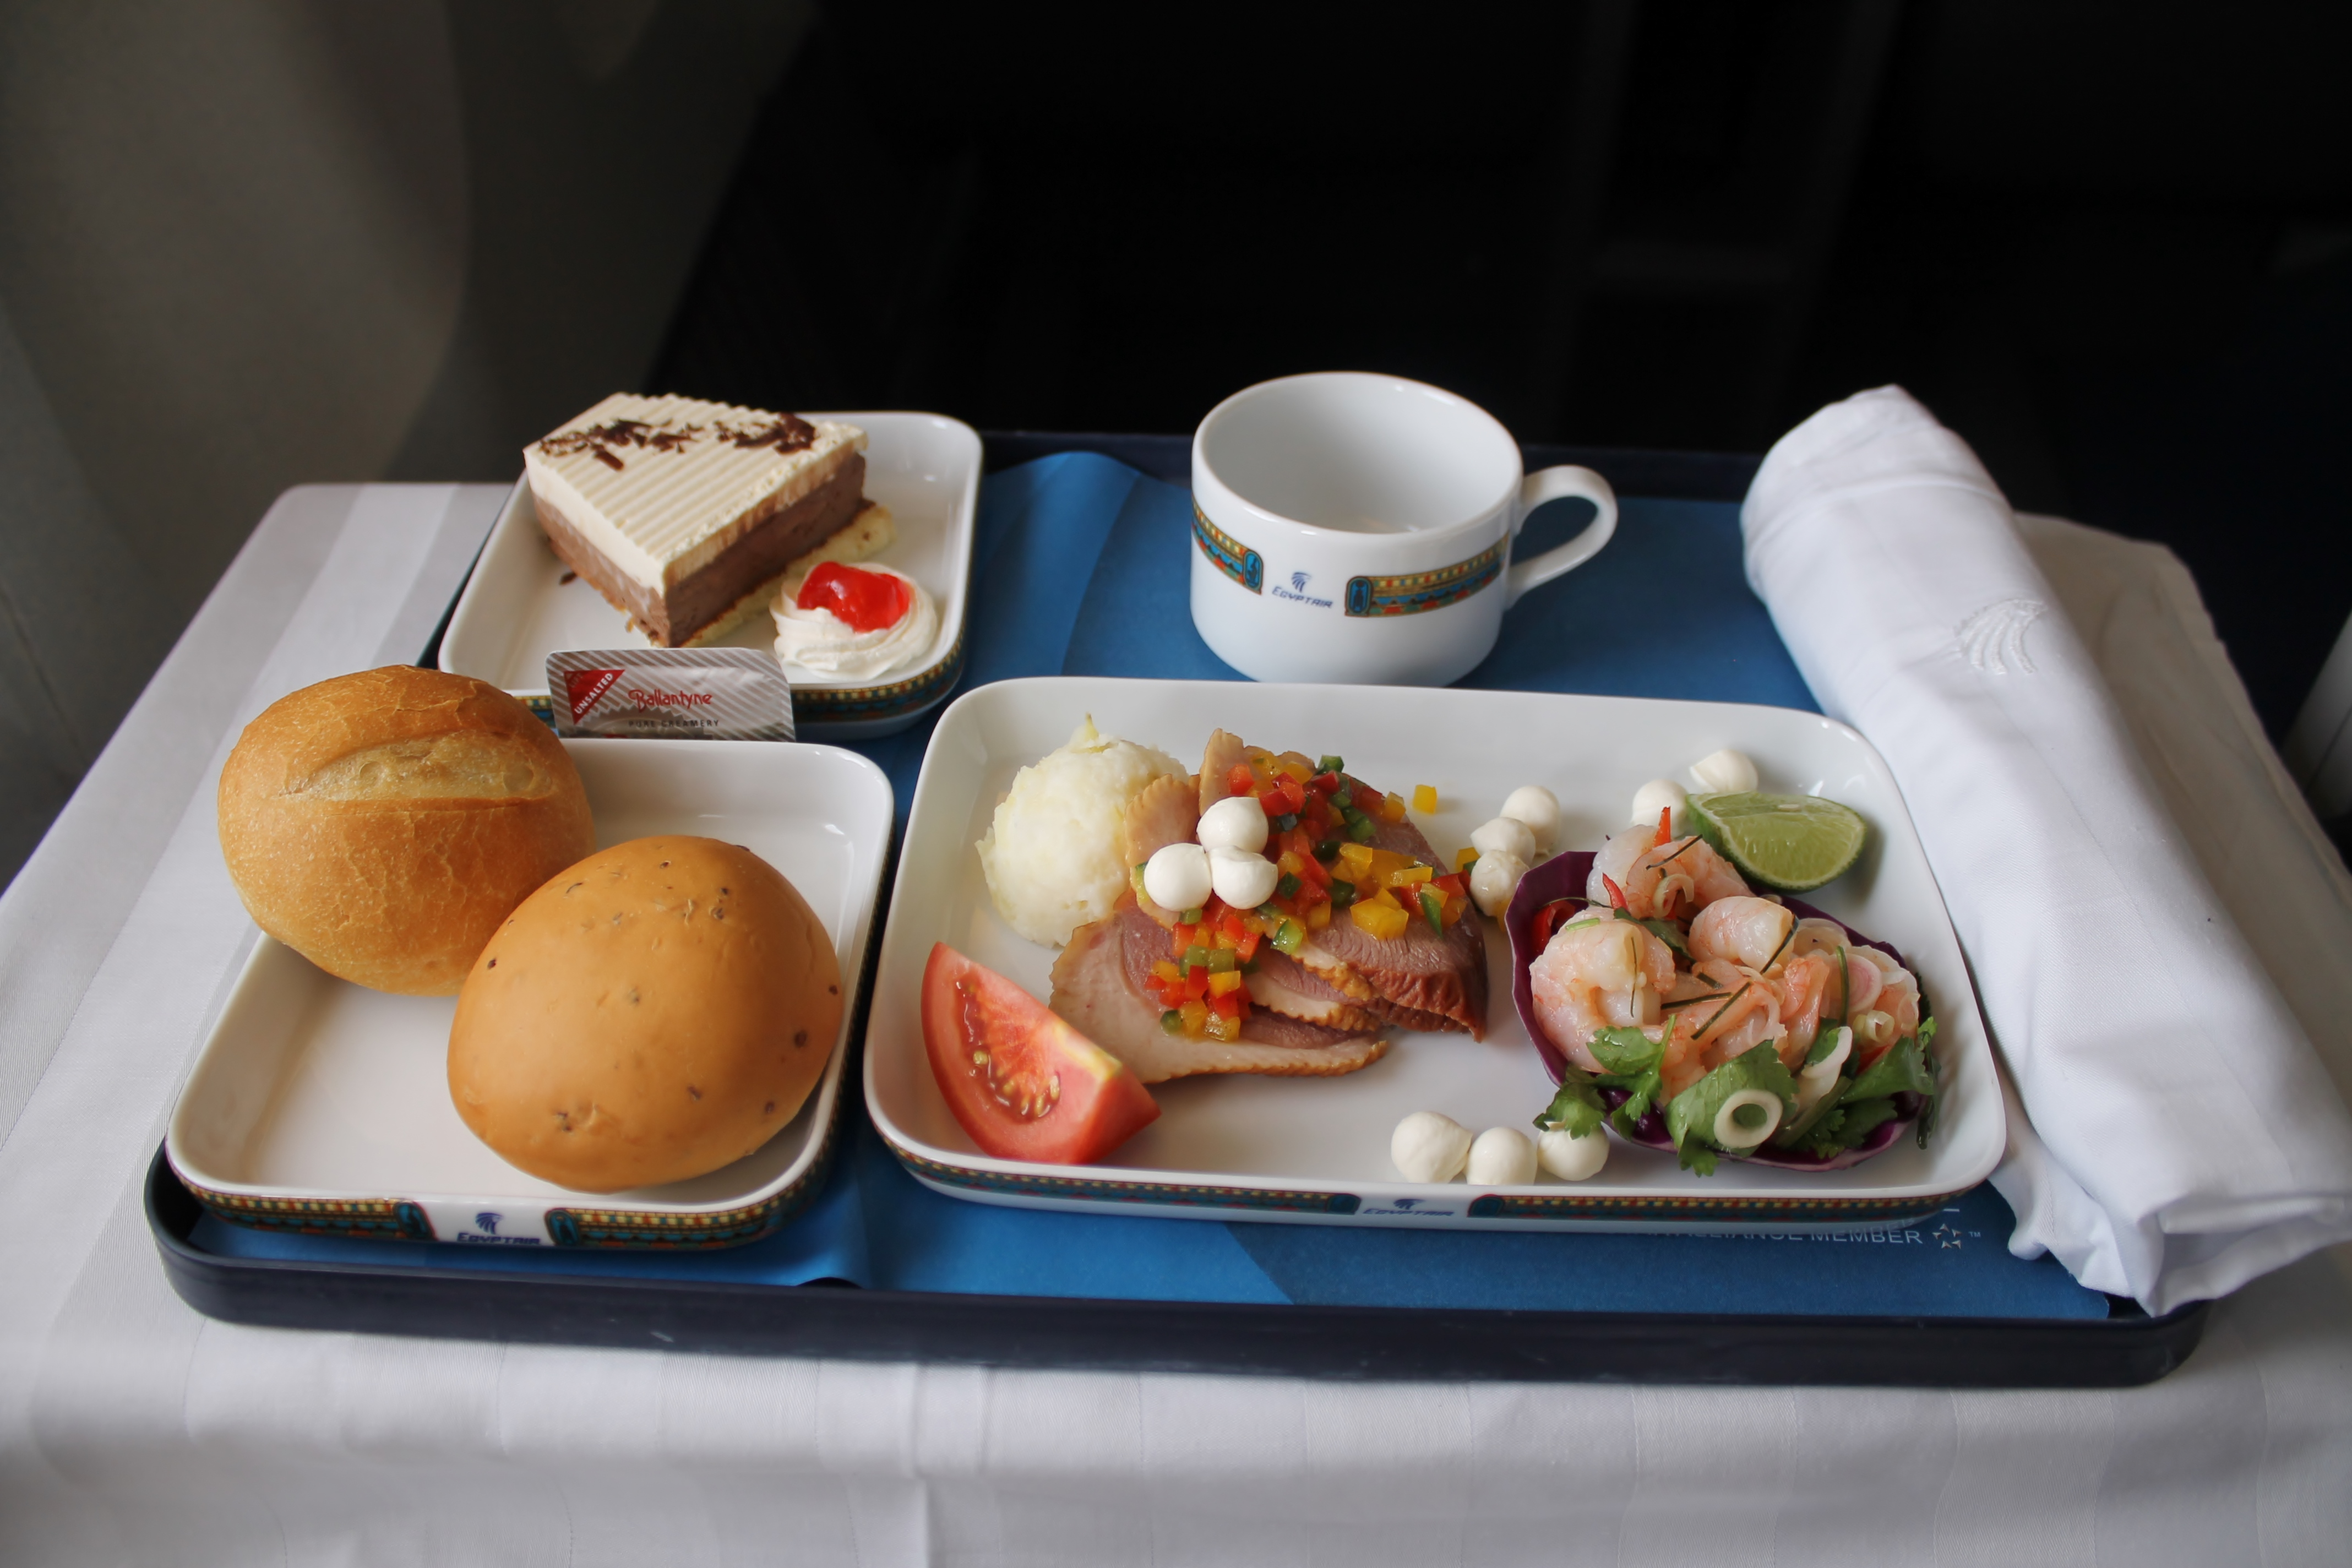 Room And Board Dining Table Review Egyptair Business Class Bangkok Kuala Lumpur